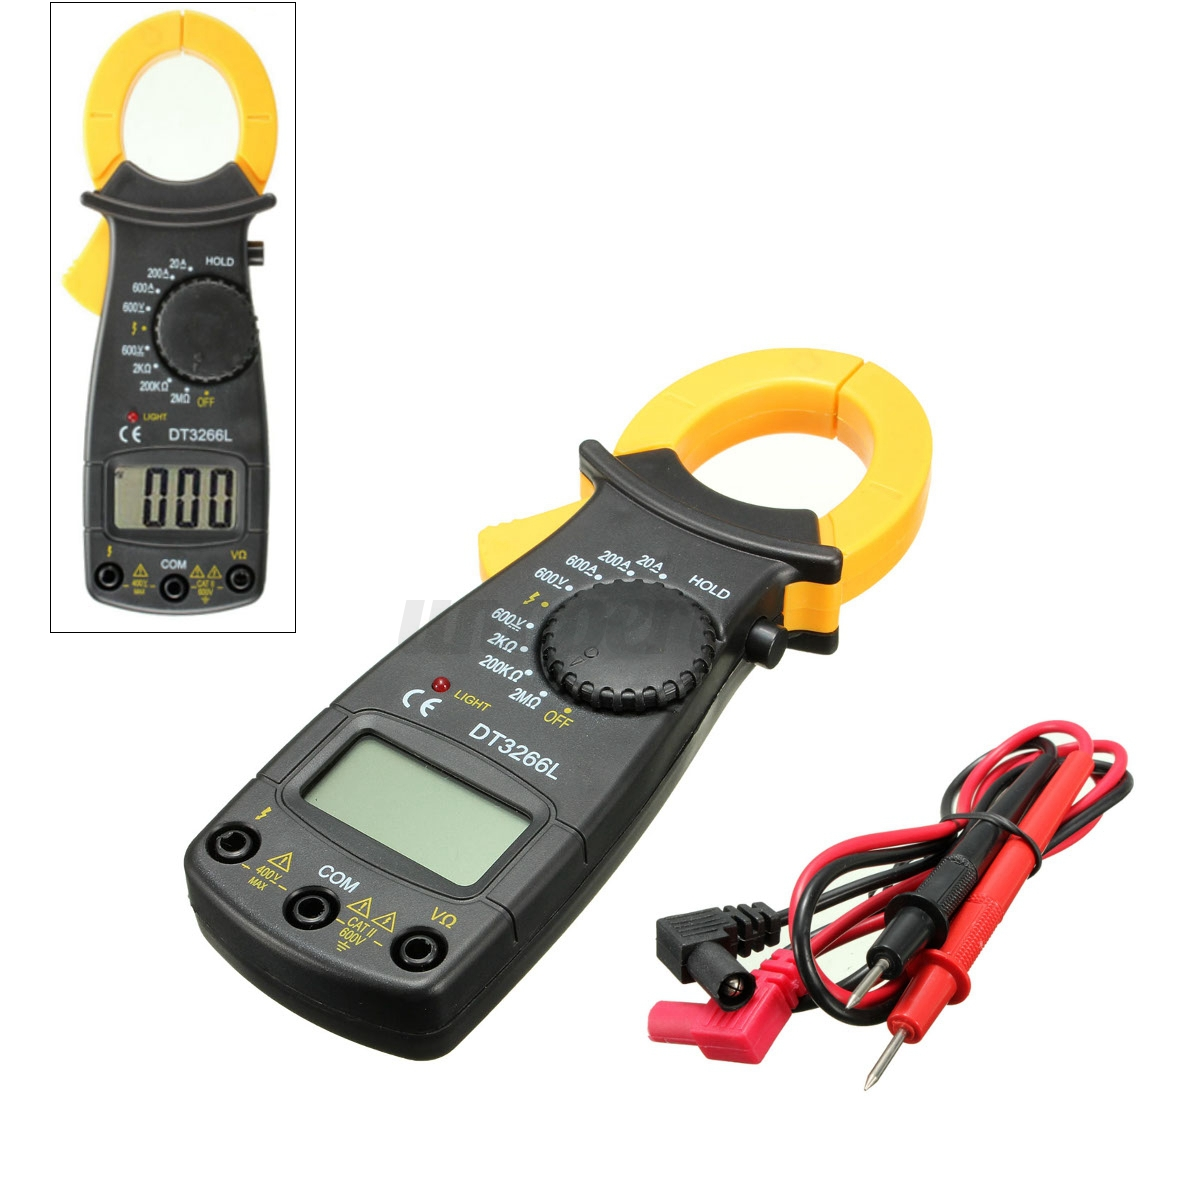 Electronic Voltage Tester For A Refrigerator : Digital lcd electronic ac dc clamp meter multimeter